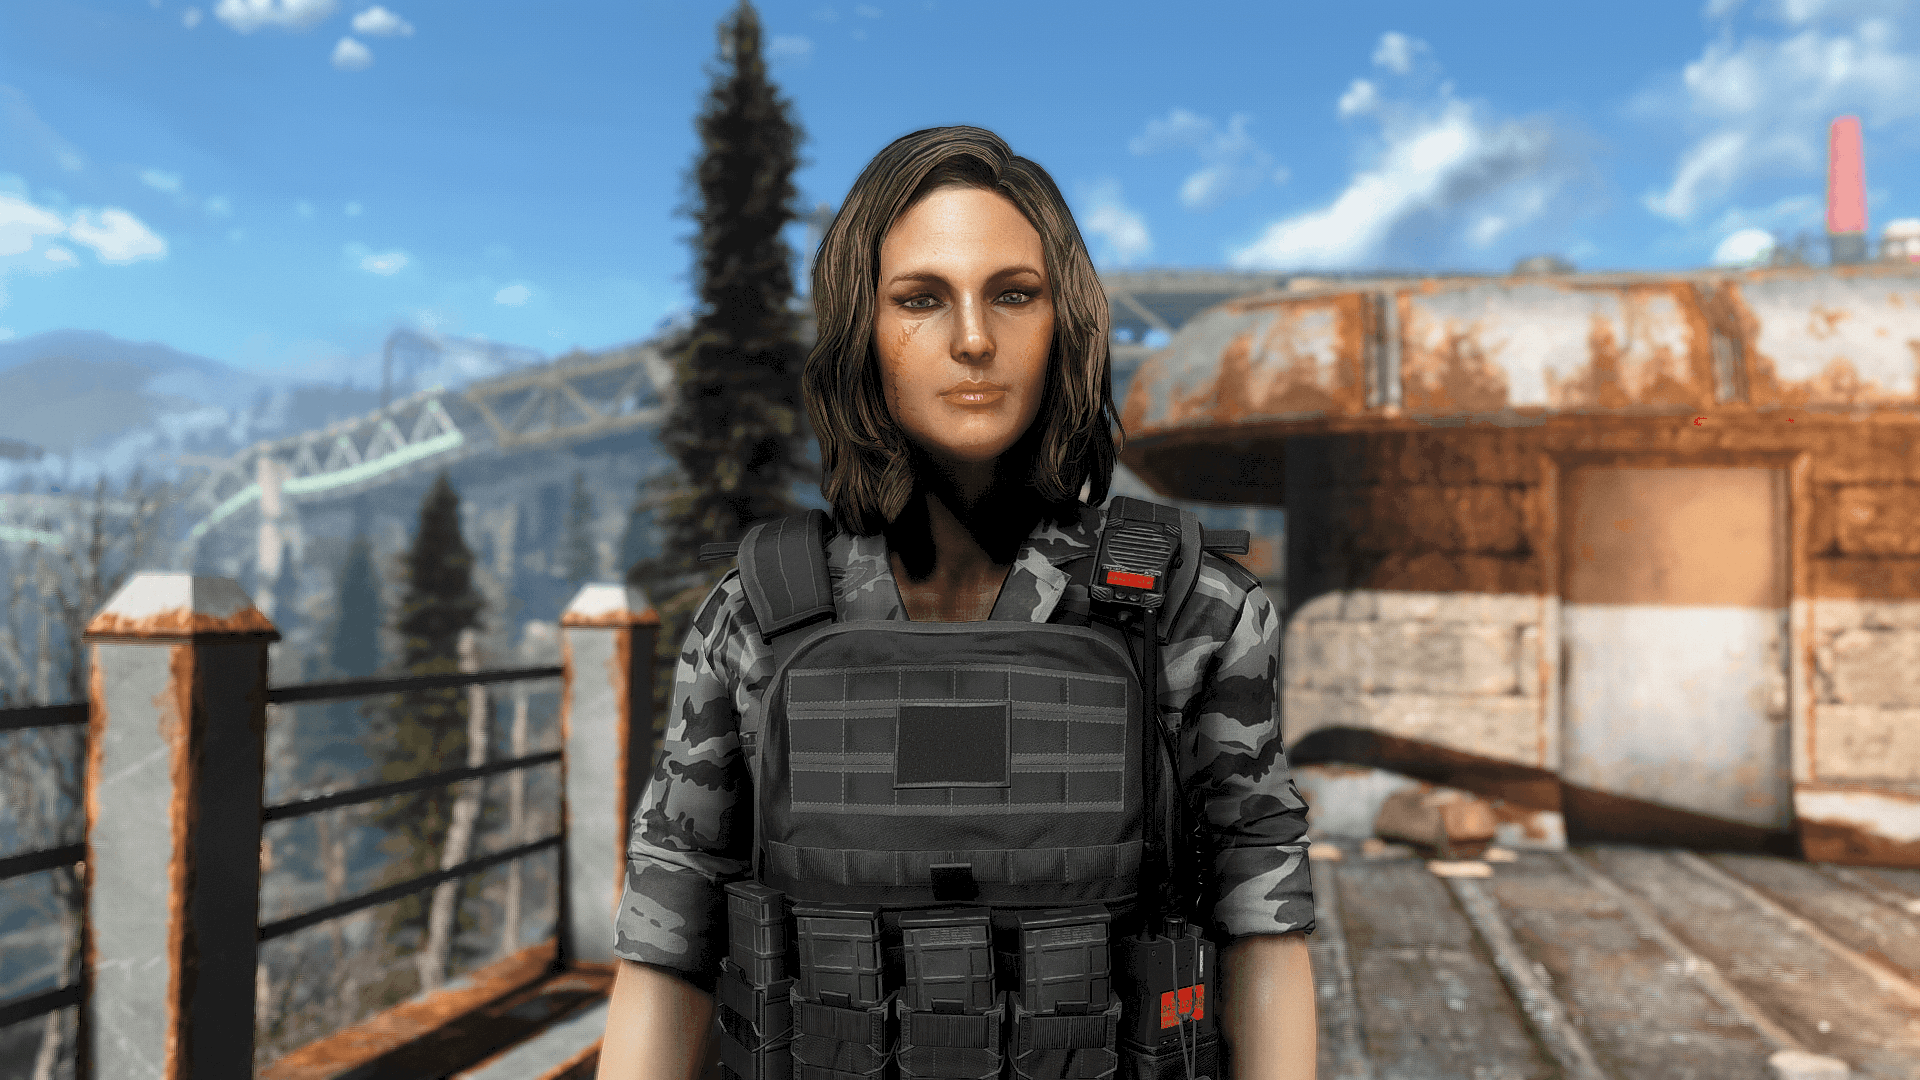 Female Preset For Elder Maxson Fallout 4 Mod Download Alt + s or ctrl + f focus the search edit. fallout 4 mods